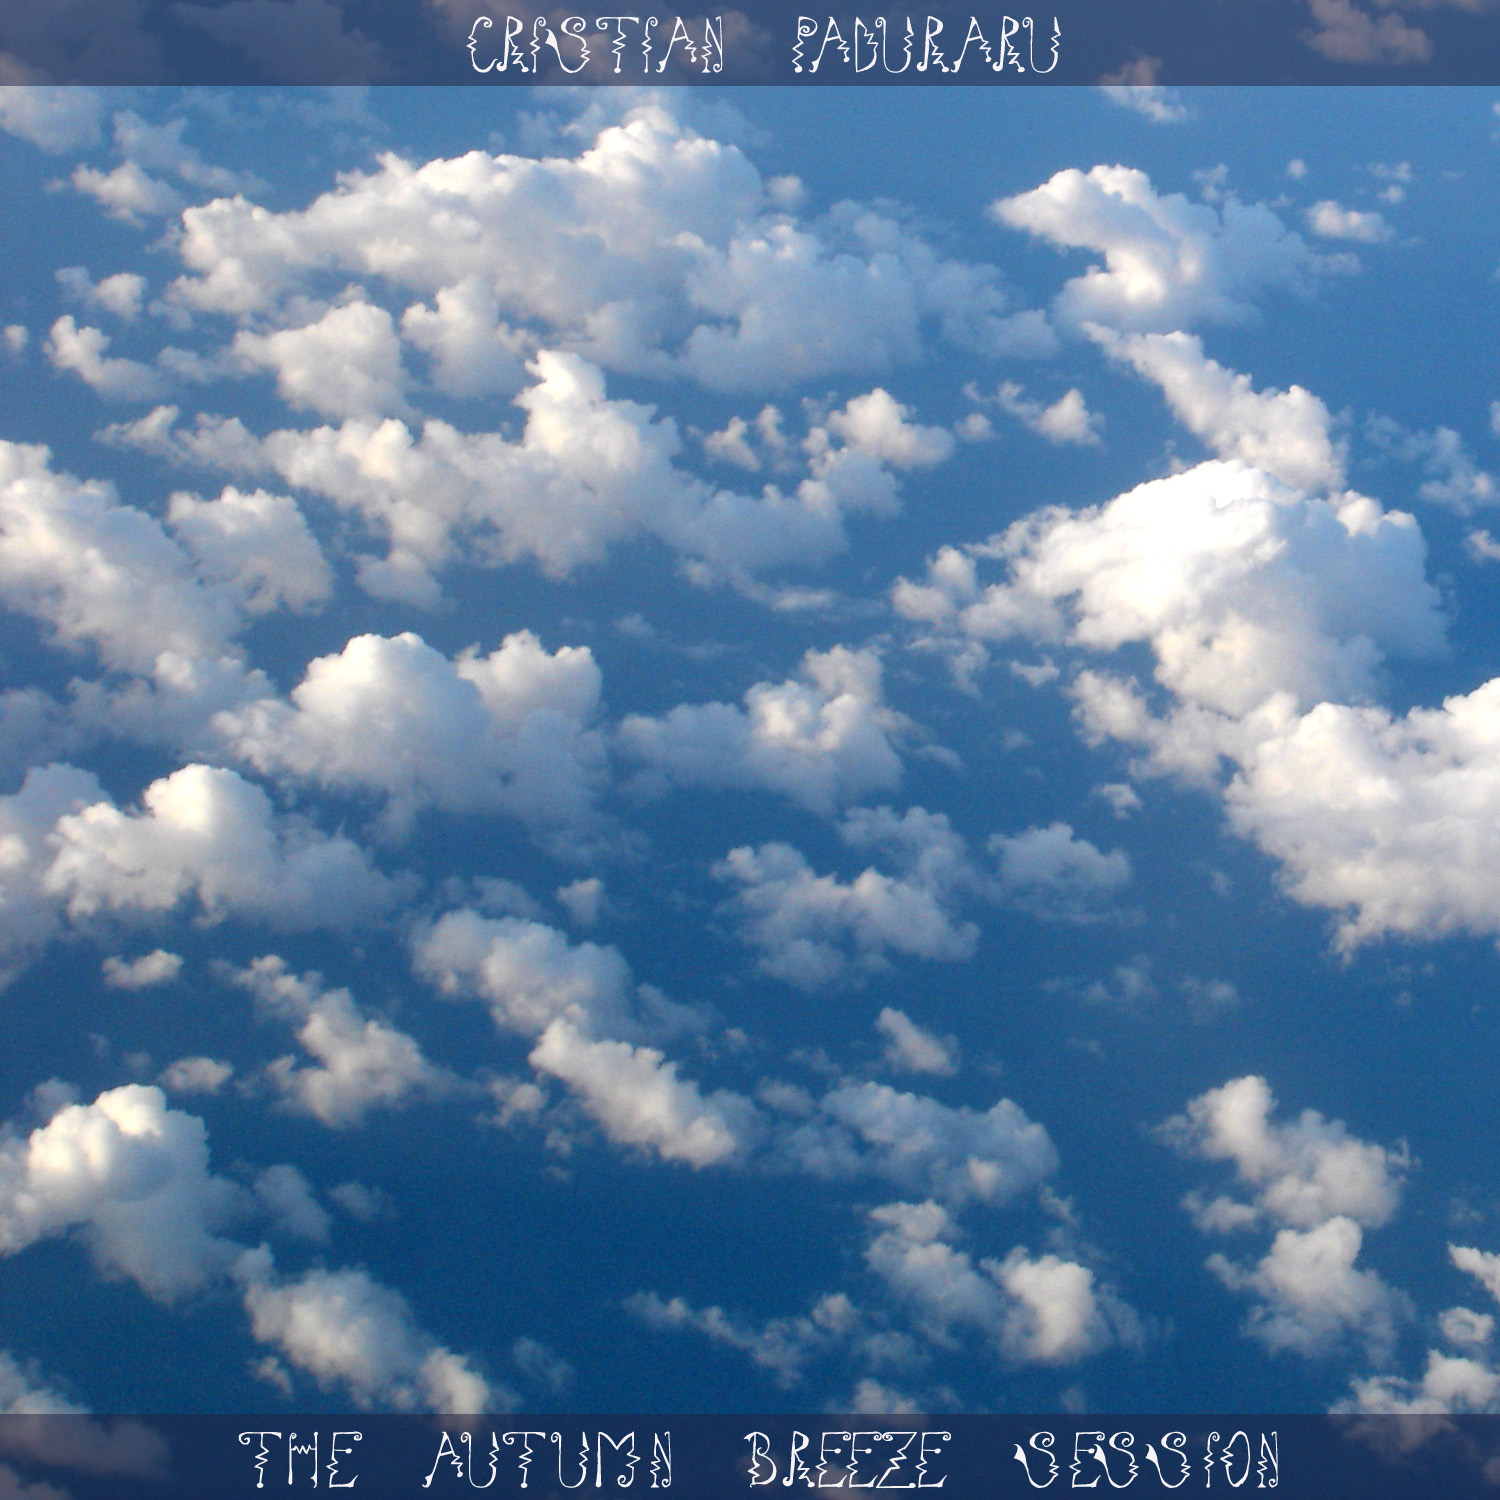 http://www.mixotic.net/mixes/033_-_Cristian_Paduraru_-_The_Autumn_Breeze_Session/cover_large.jpg